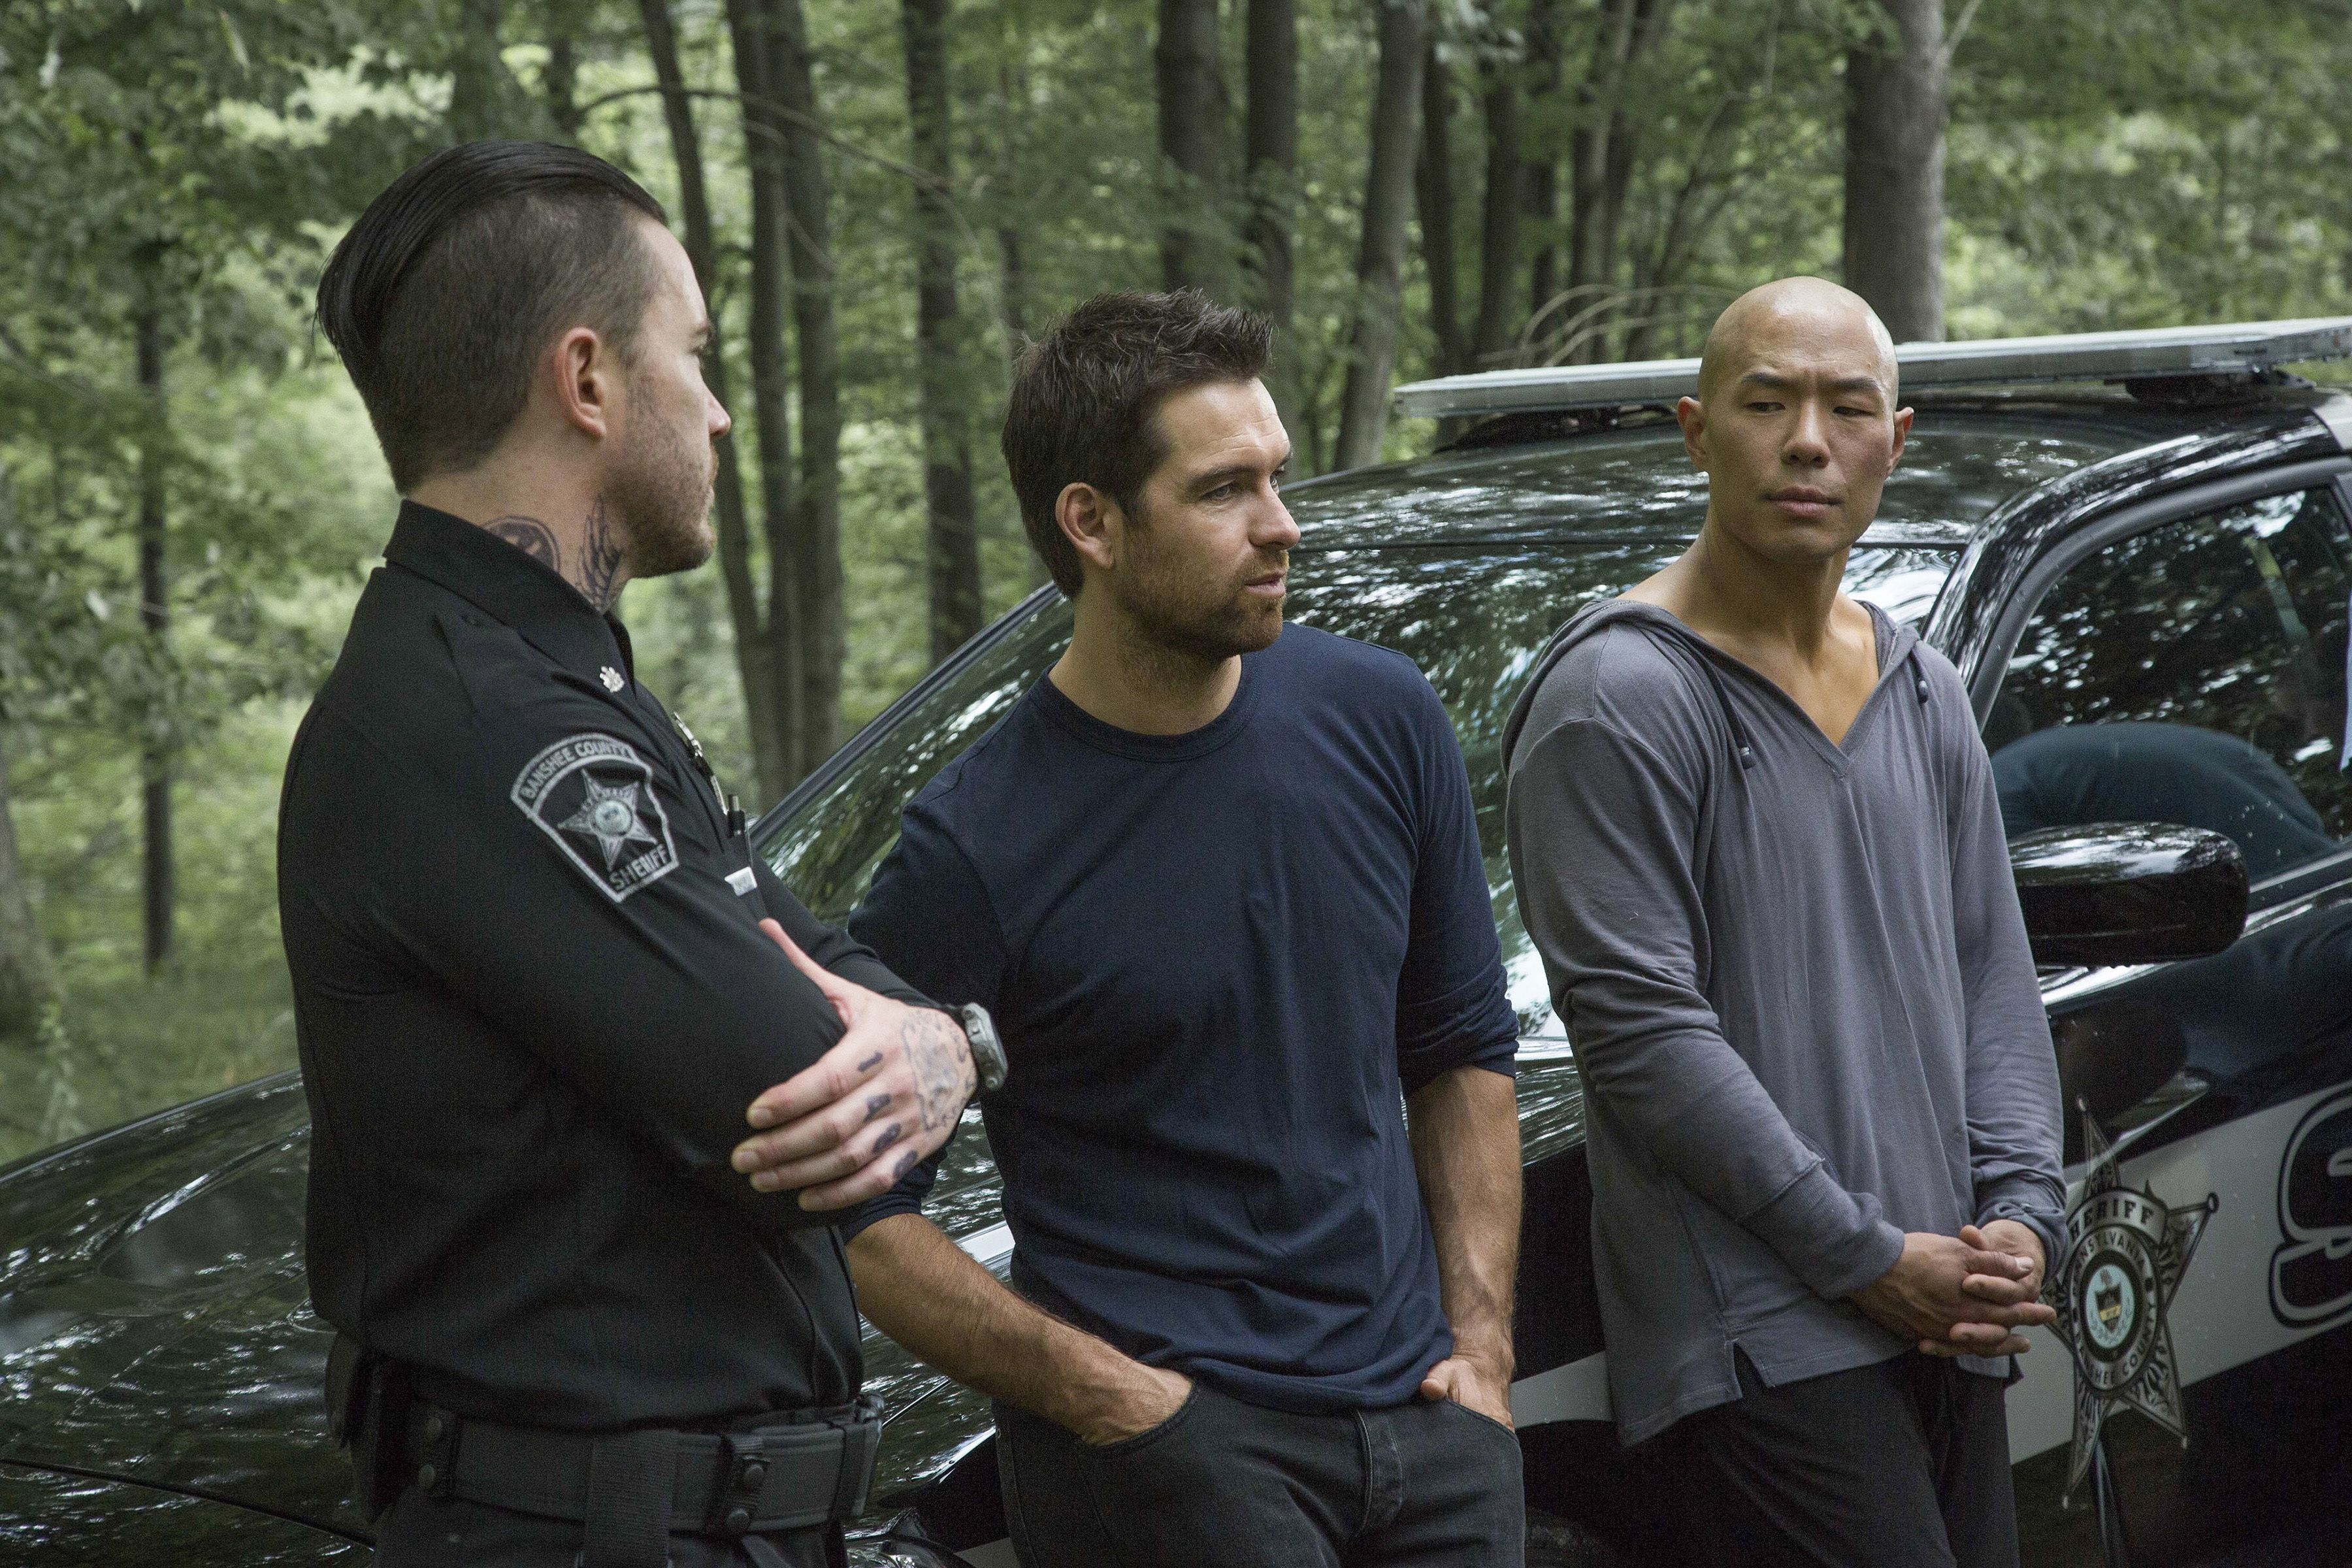 Banshee Creator Jonathan Tropper On Why He Changed The Ending Of The Series